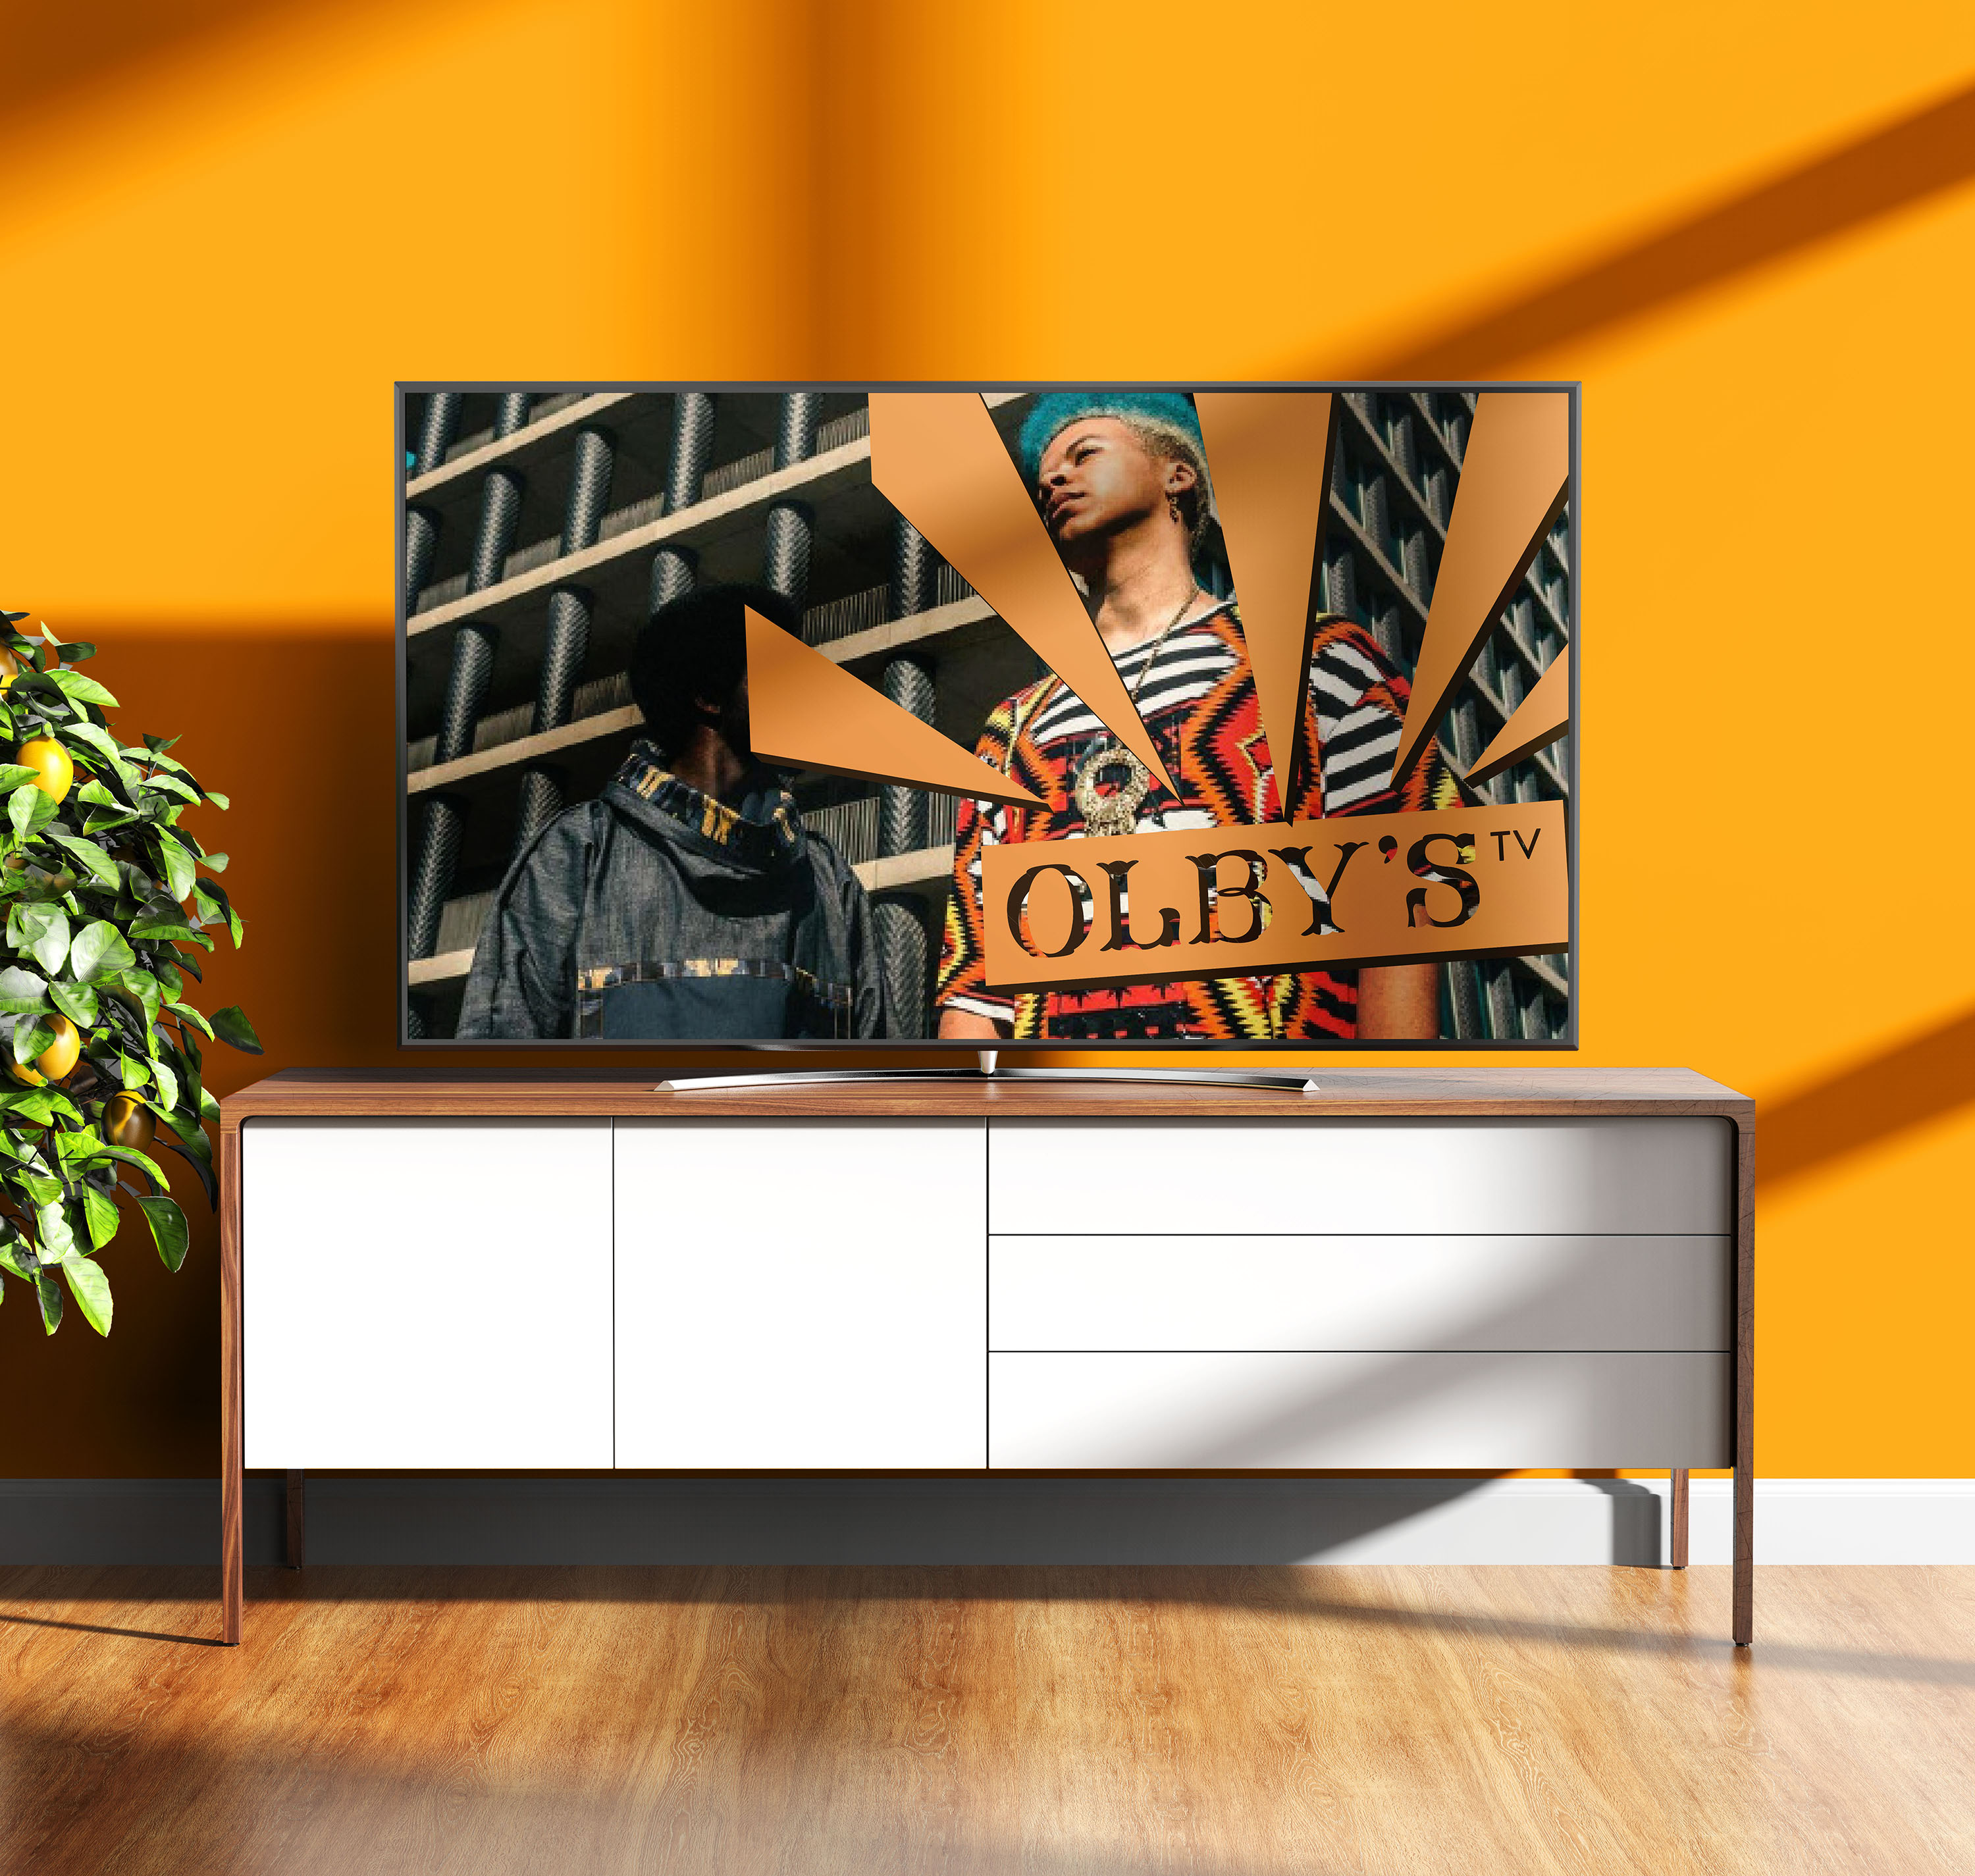 Olby's TV